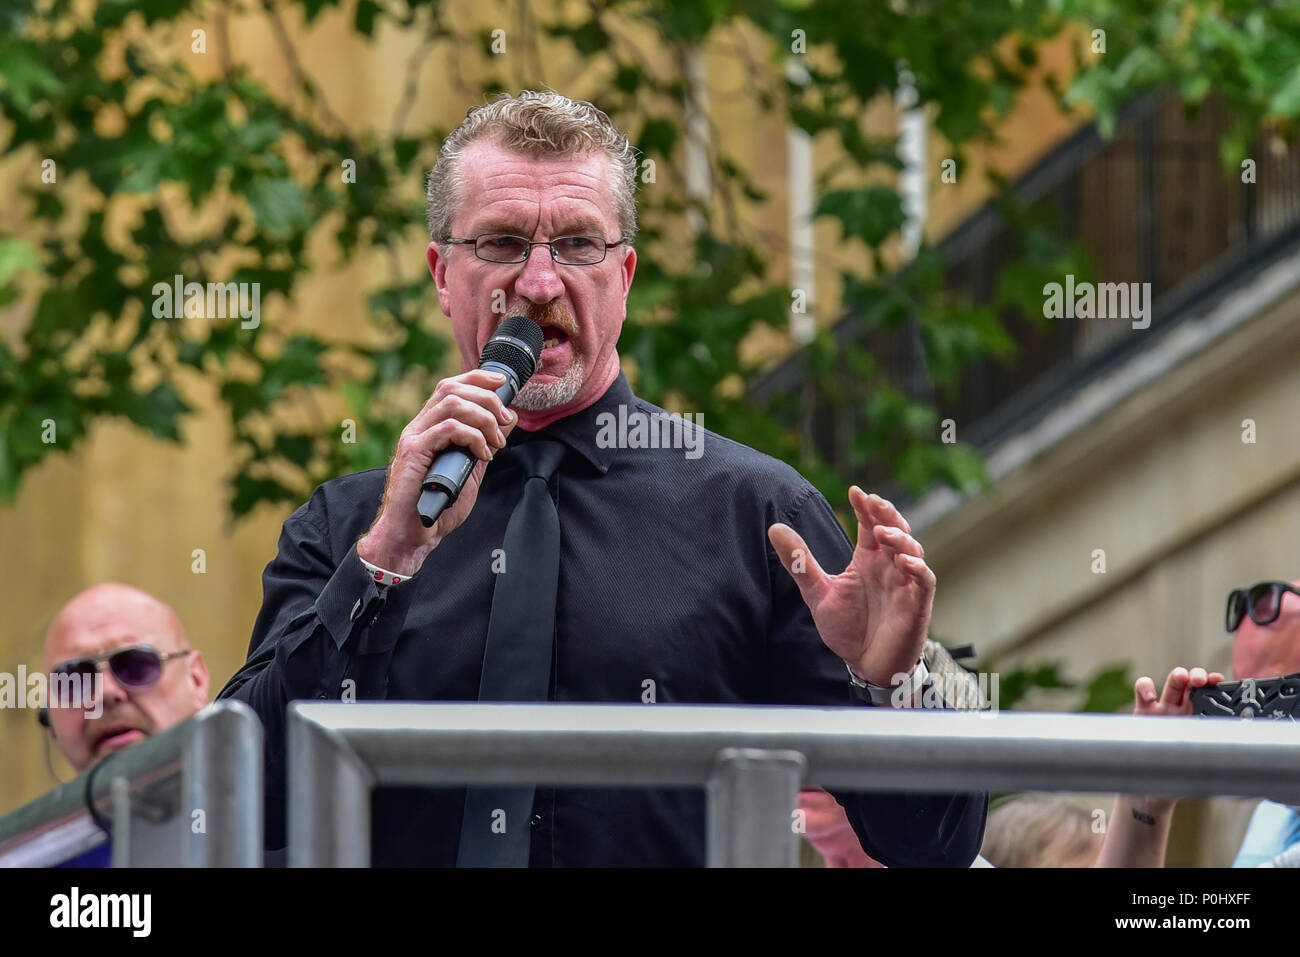 London, United Kingdom. 9 June 2018. A 'Free Tommy' demonstration has been held in Whitehall to protest against the jailing of Stephen Yaxley-Lennon who goes by the name Tommy Robinson. In May 2018 Robinson was sentenced to ten months for contempt of court and a previous three months' suspended sentence was activated. PICTURED: Kevin Carroll Credit: Peter Manning/Alamy Live News - Stock Image